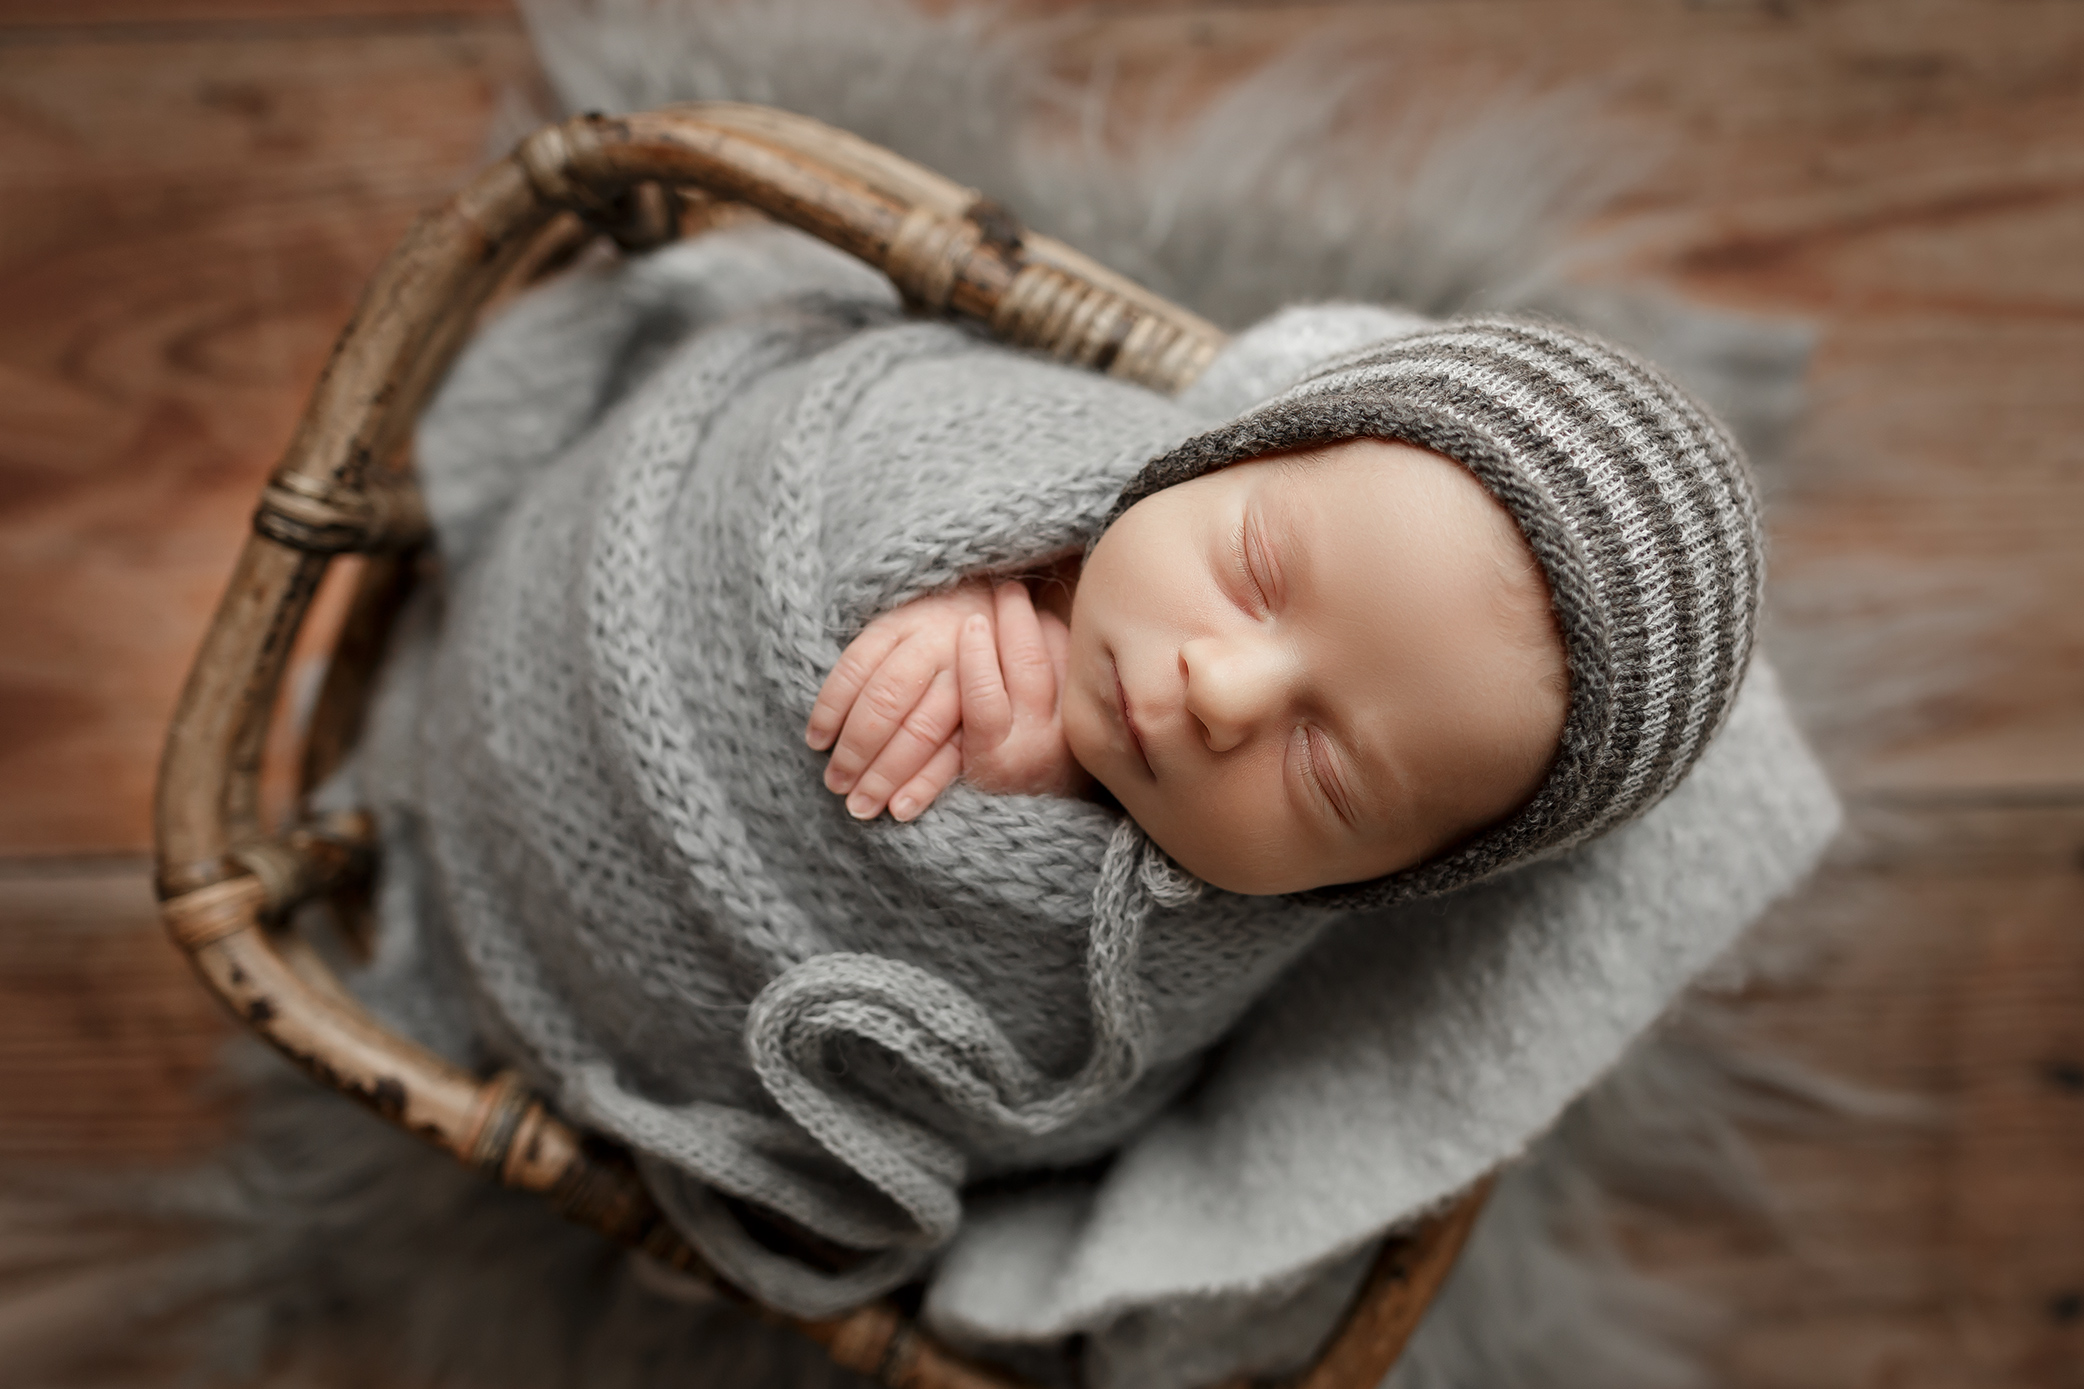 William-Liam-George-Brown-Newborn-Session-2361.jpg